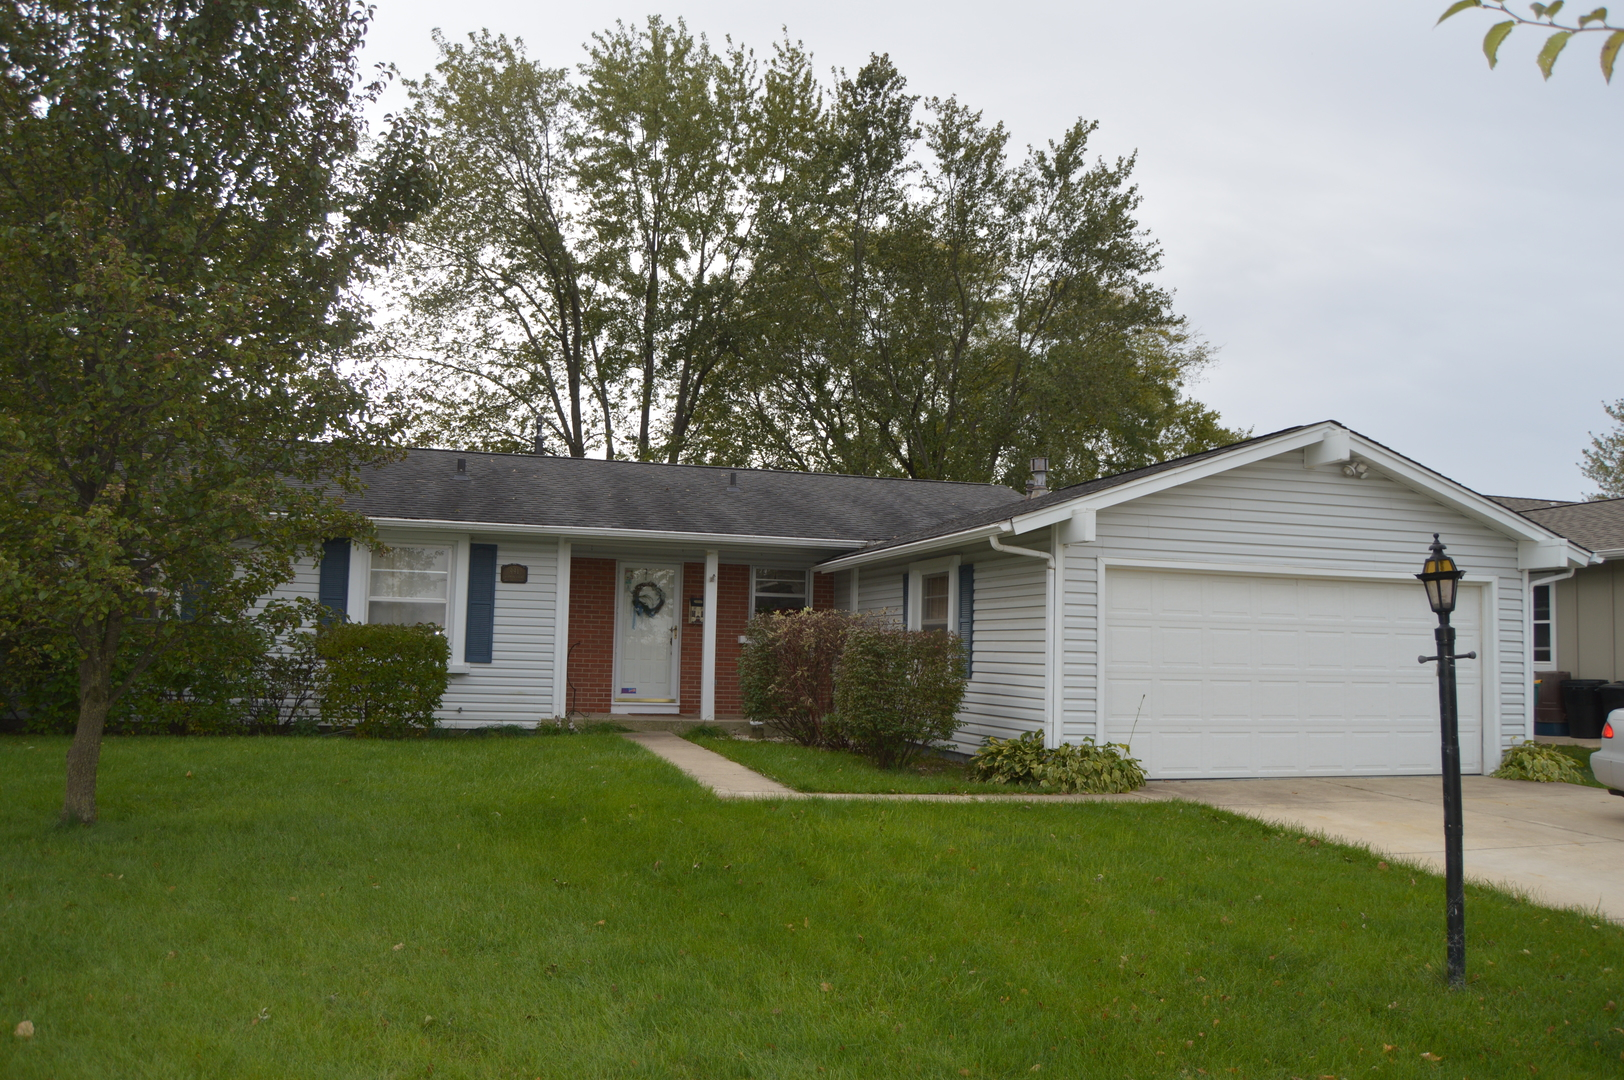 991 Borman ,Elk Grove Village, Illinois 60007